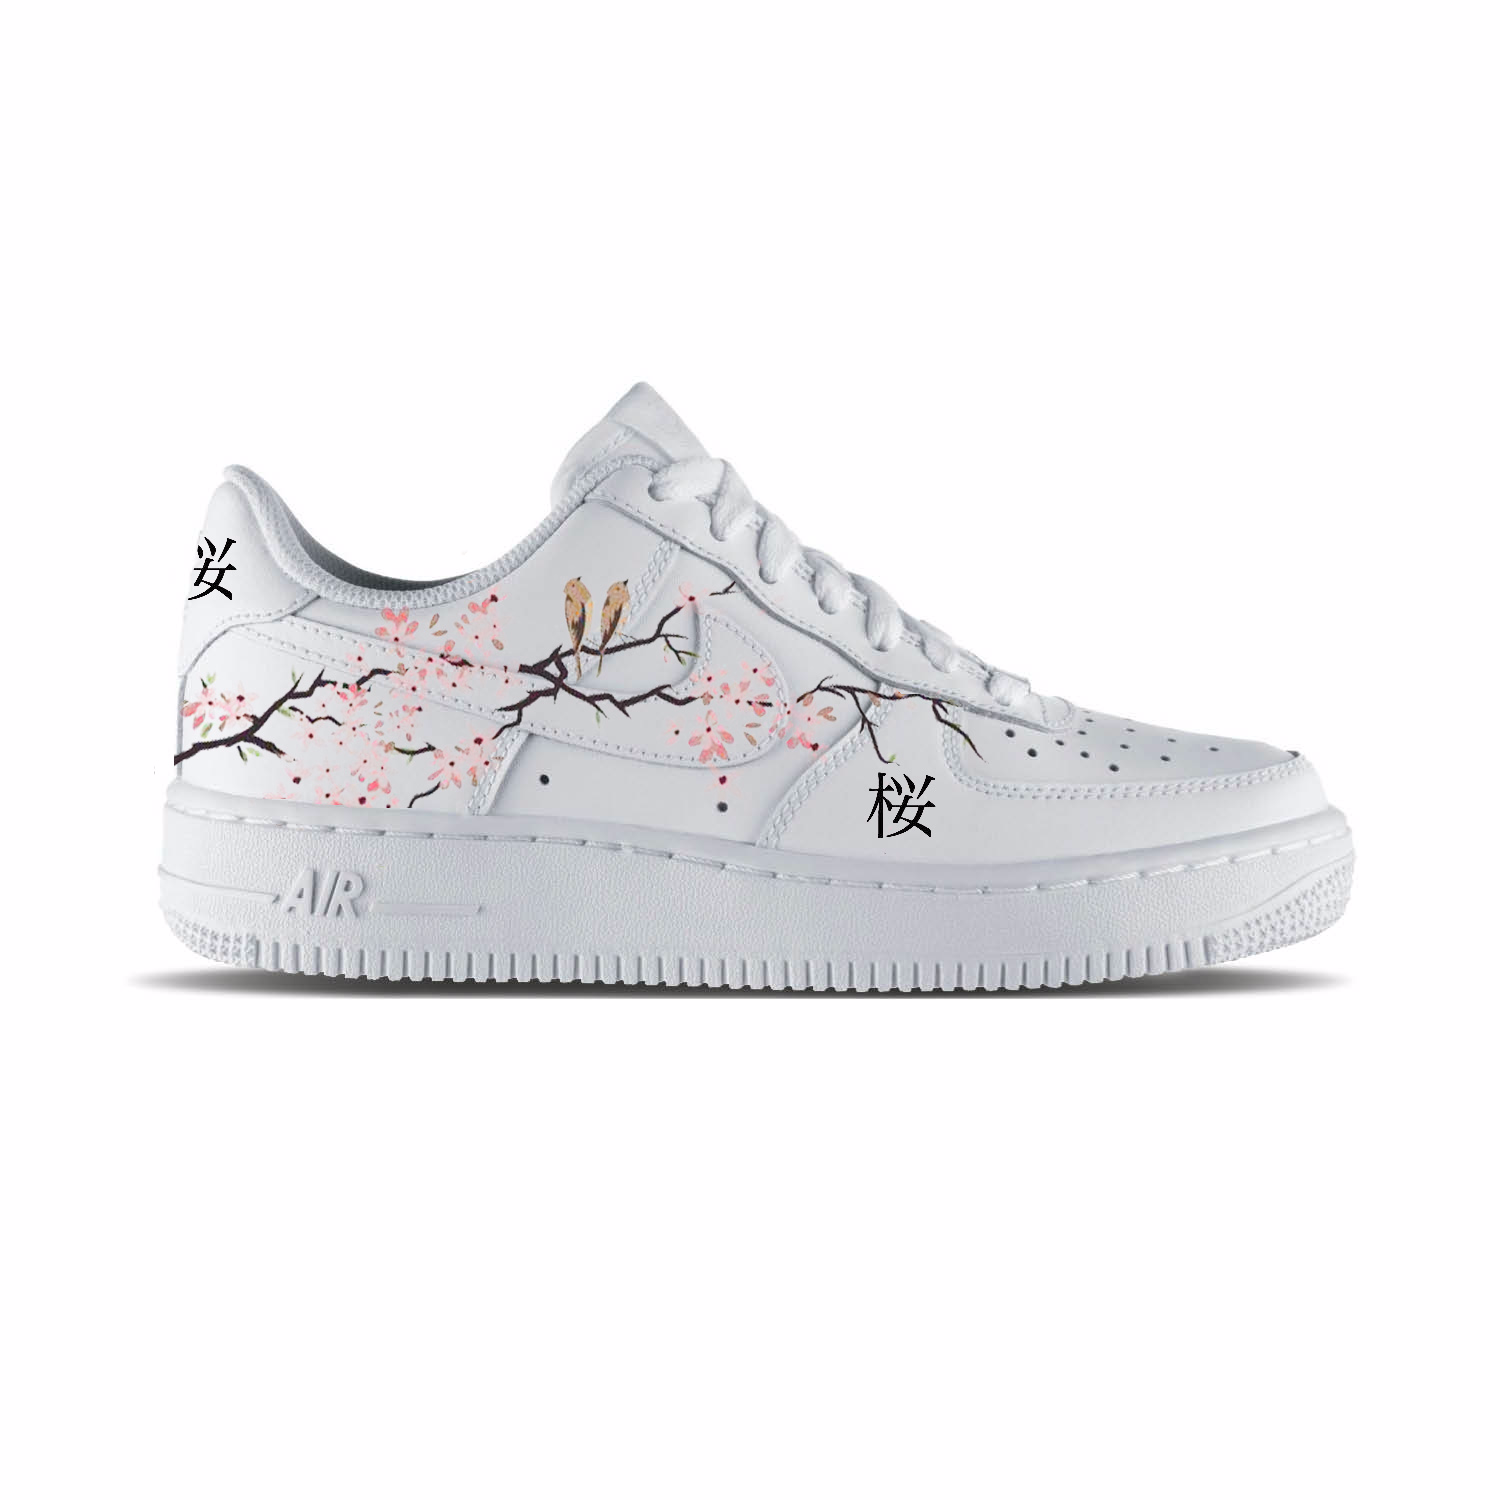 2019Nike Dot Pin Grab Ello In Shoes At On By Air ForceForce CsrdhtQxB